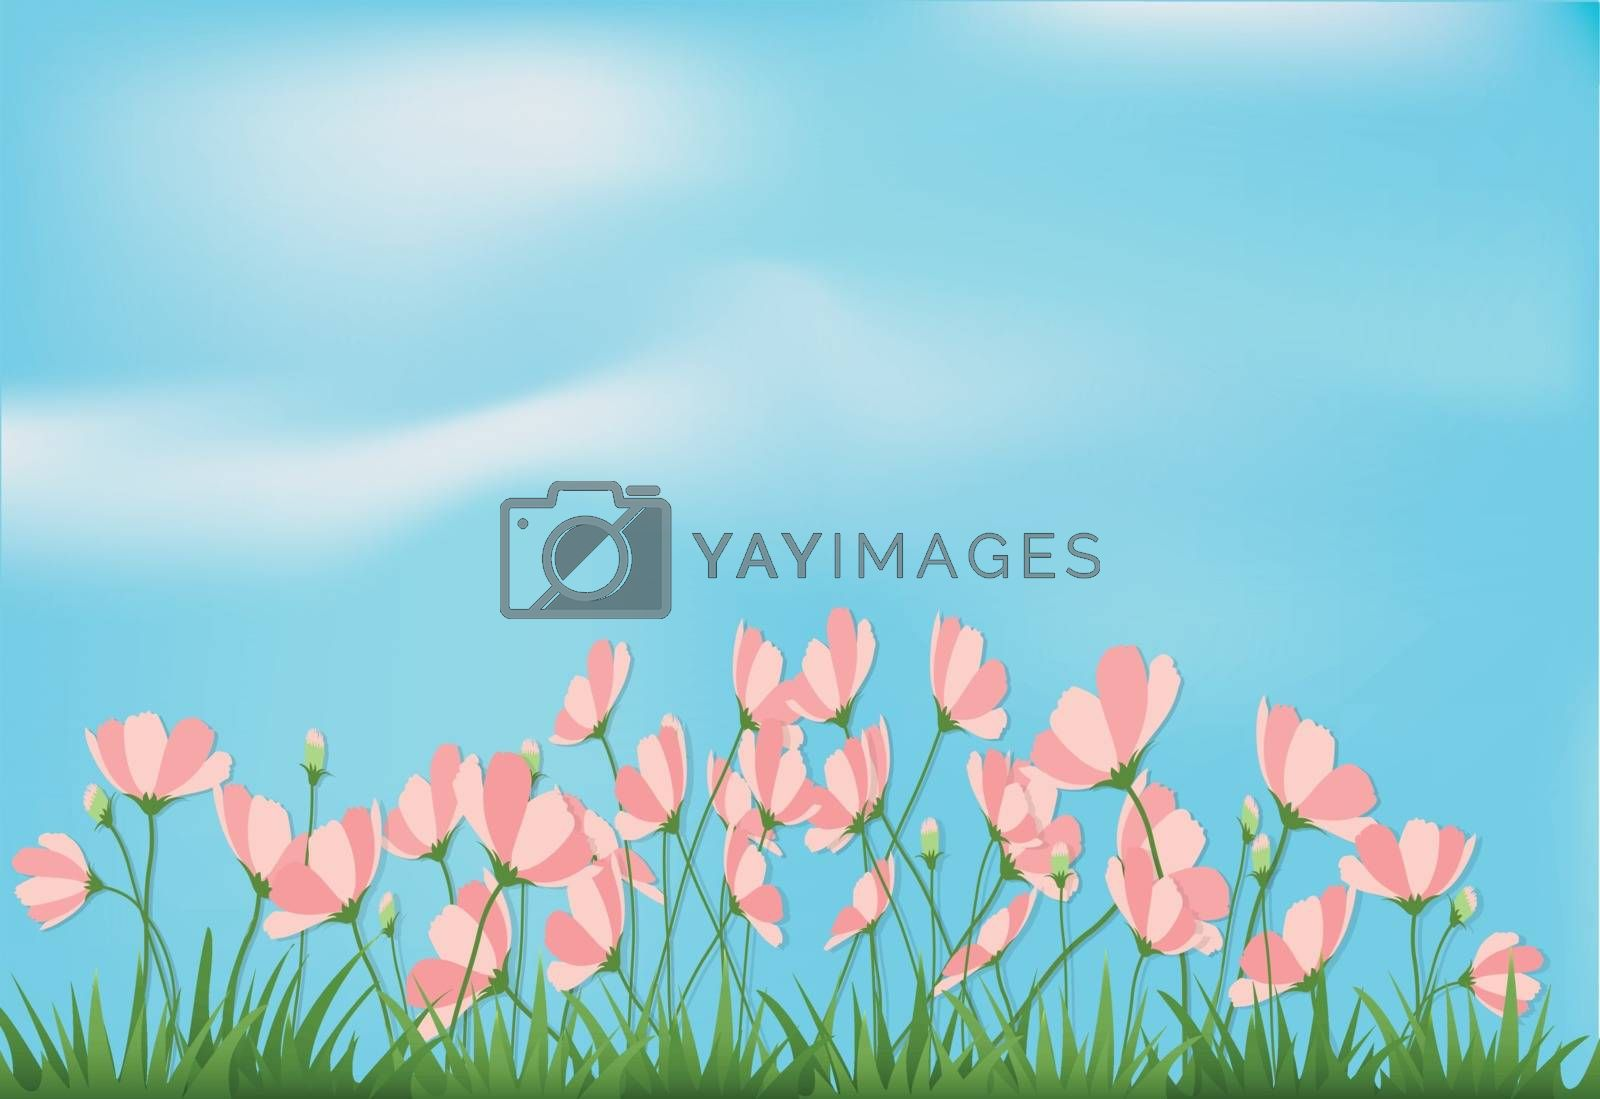 Paper art illustration of cosmos flowers and grass with blue sky spring season paper cut style background